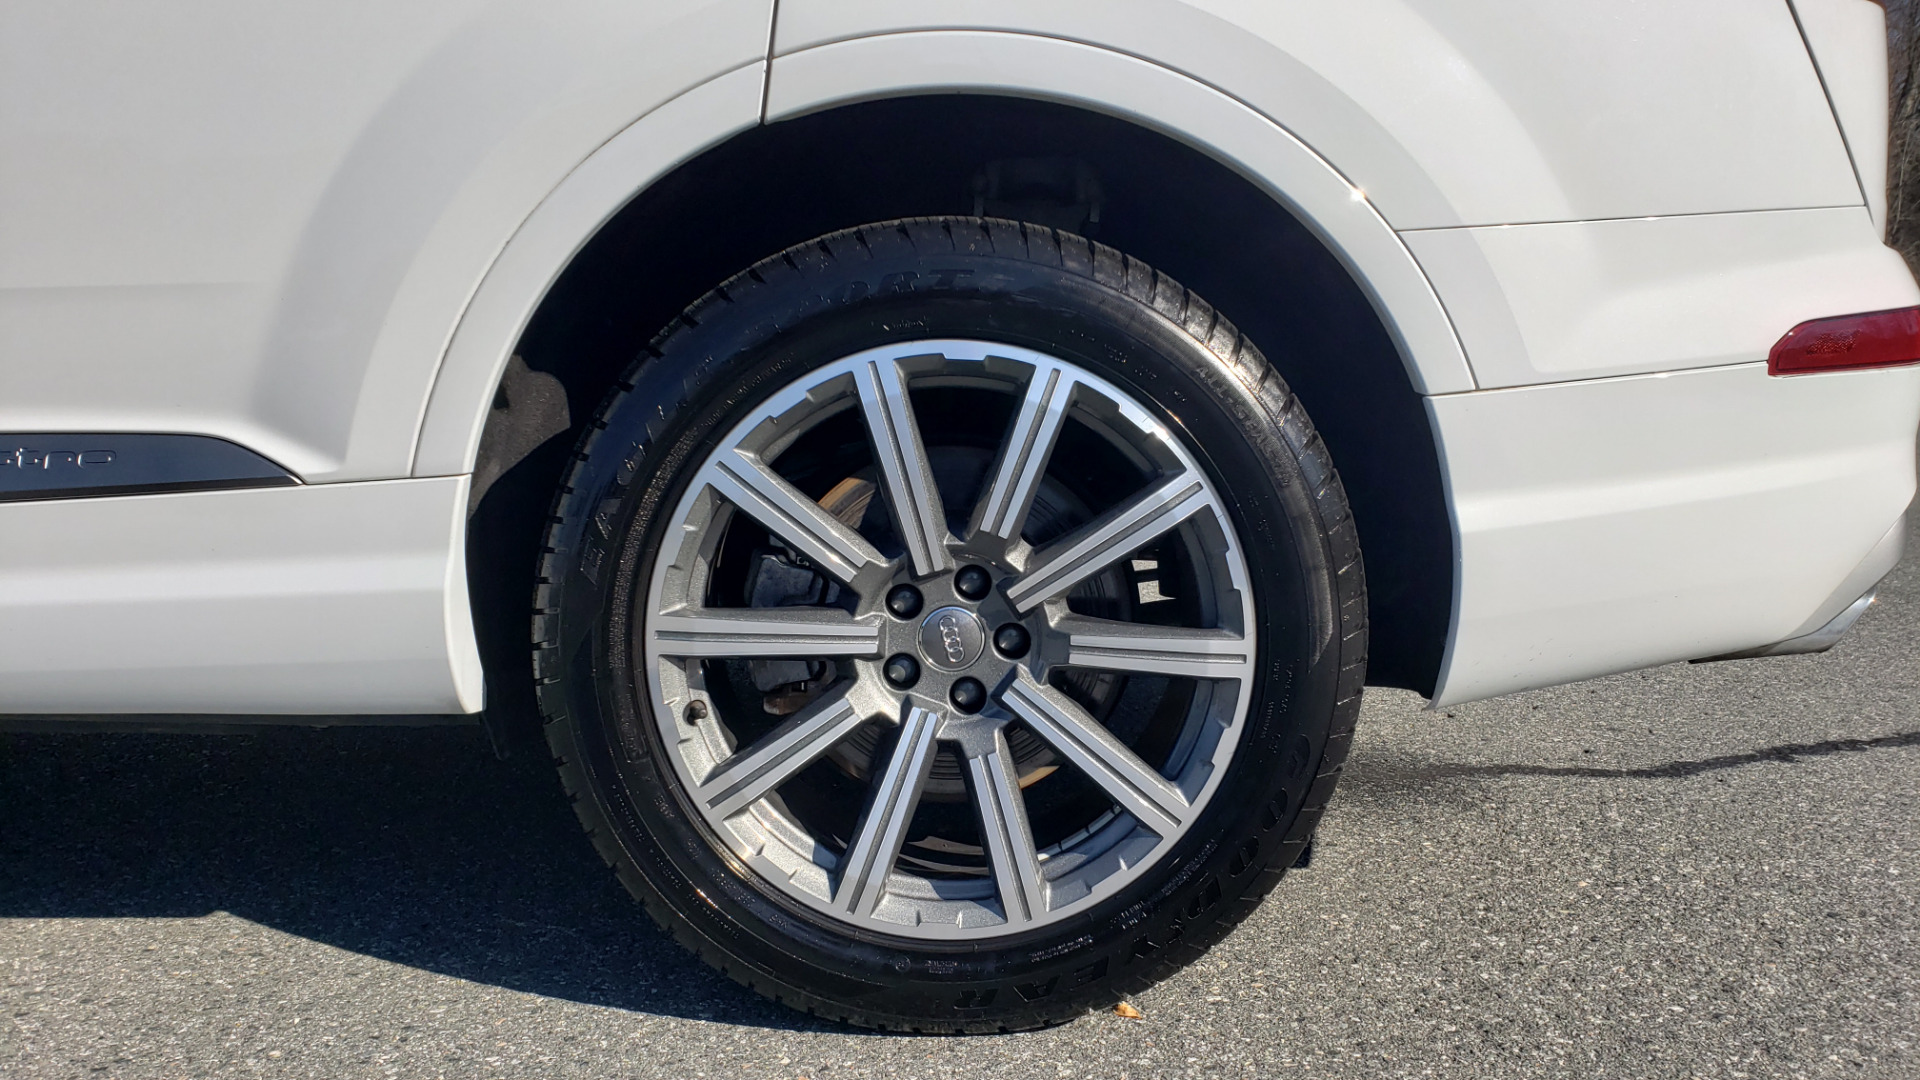 Used 2017 Audi Q7 PRESTIGE 3.0T / NAV / CLD WTHR / SUNROOF / REARVIEW for sale Sold at Formula Imports in Charlotte NC 28227 7